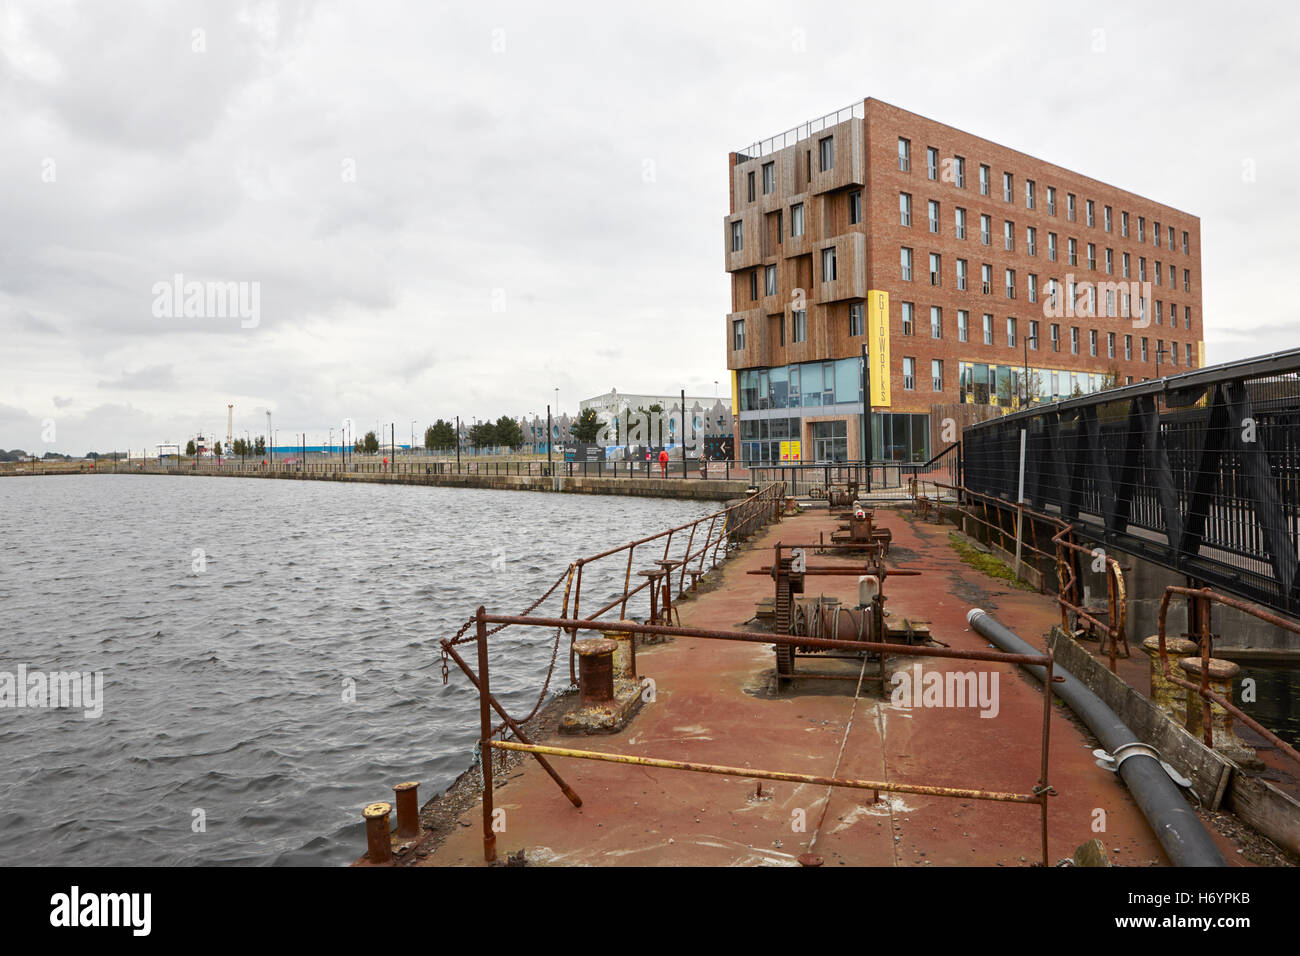 roath basin and gloworks creative industries centre hub porth teigr Cardiff bay Wales United Kingdom - Stock Image